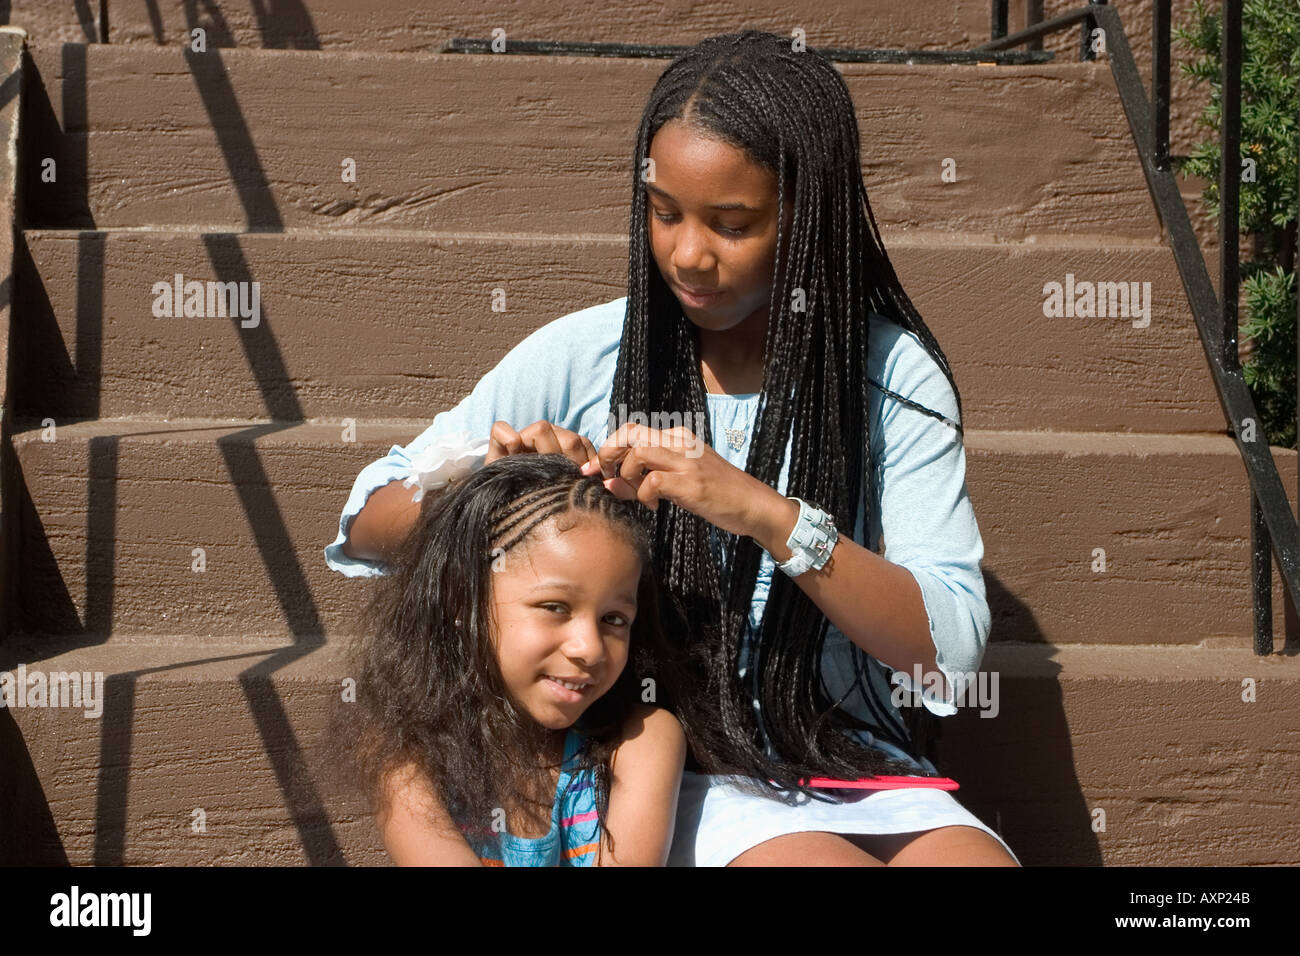 Teenage African American Girl Sitting On Steps And Braiding Hair Of